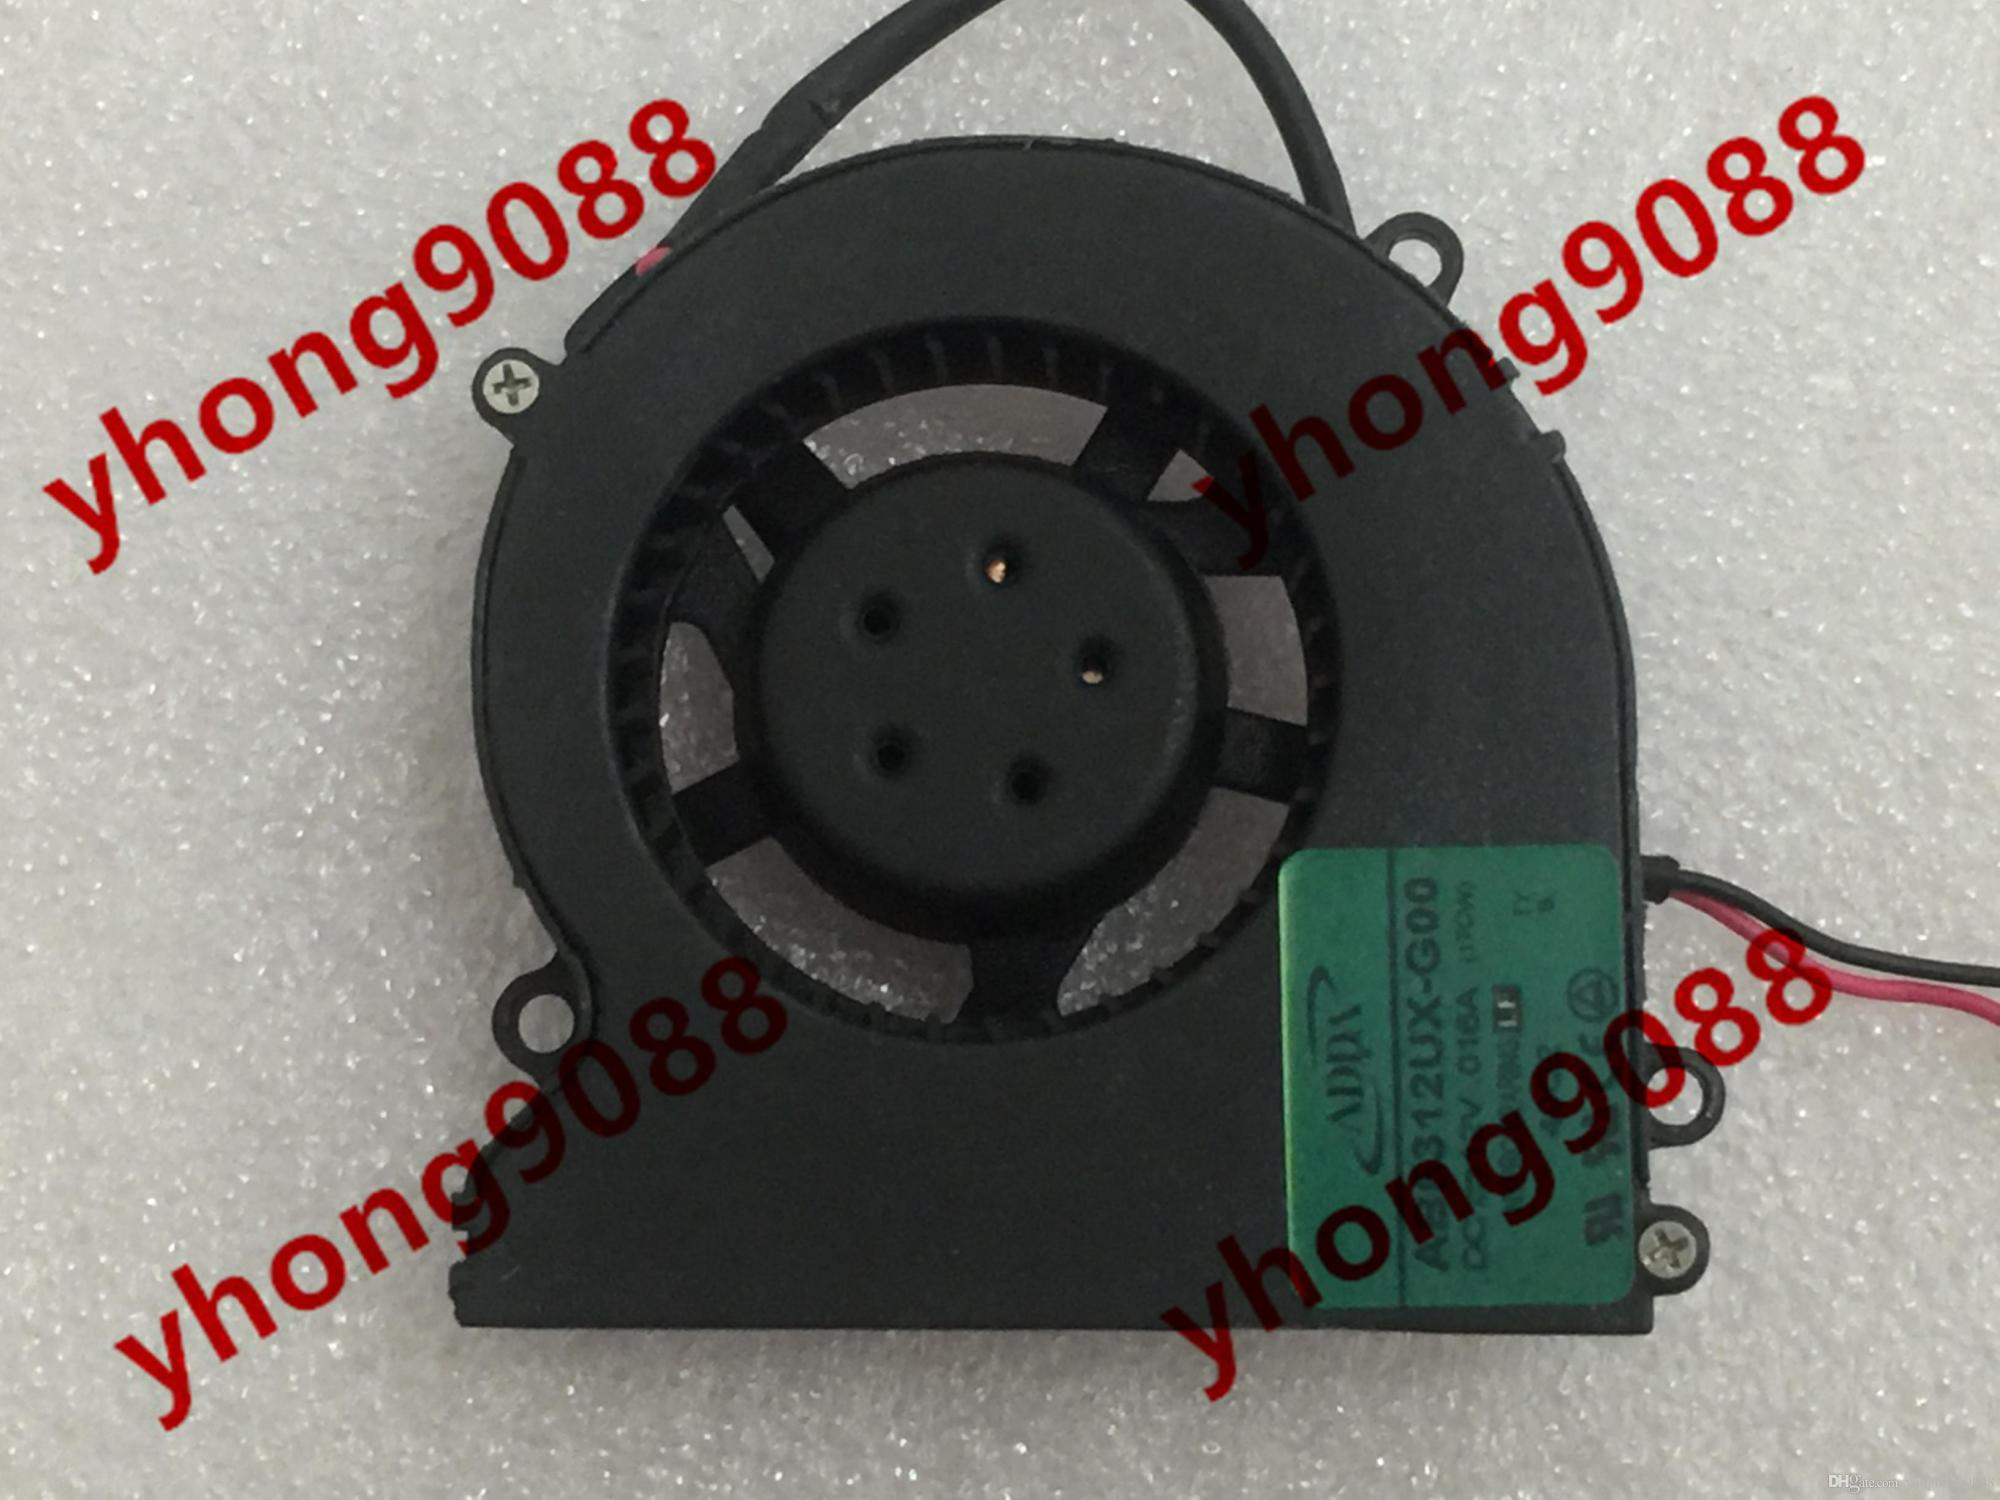 hight resolution of 2019 adda ab05312ux100000 1tcw dc 12v 0 12a 2 wire 2 pin connector 80mm server blower cooling fan from yangliang9088 22 47 dhgate com